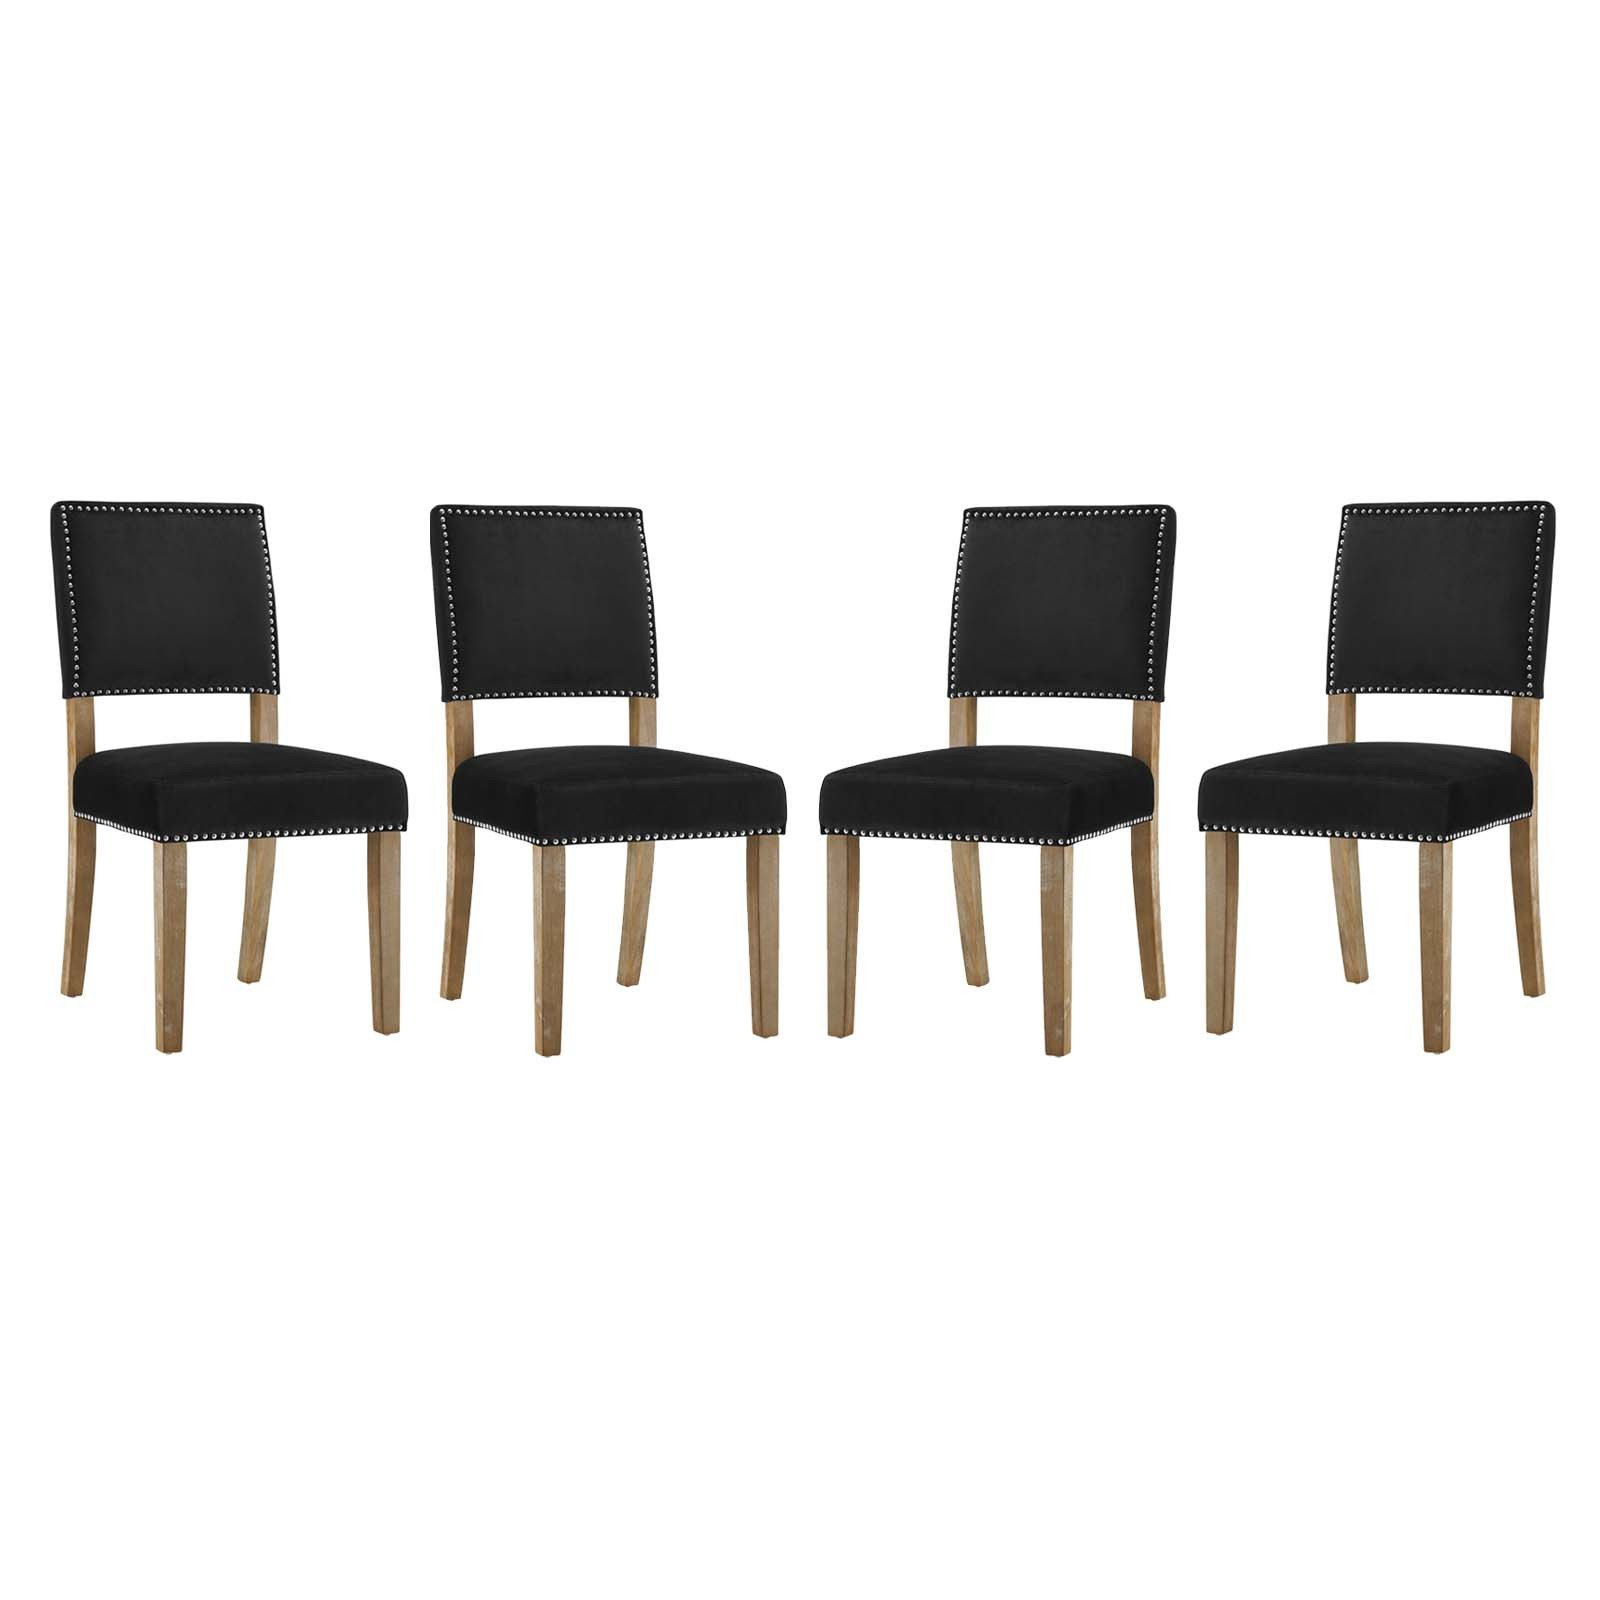 Oblige Dining Chair Wood Set of 4